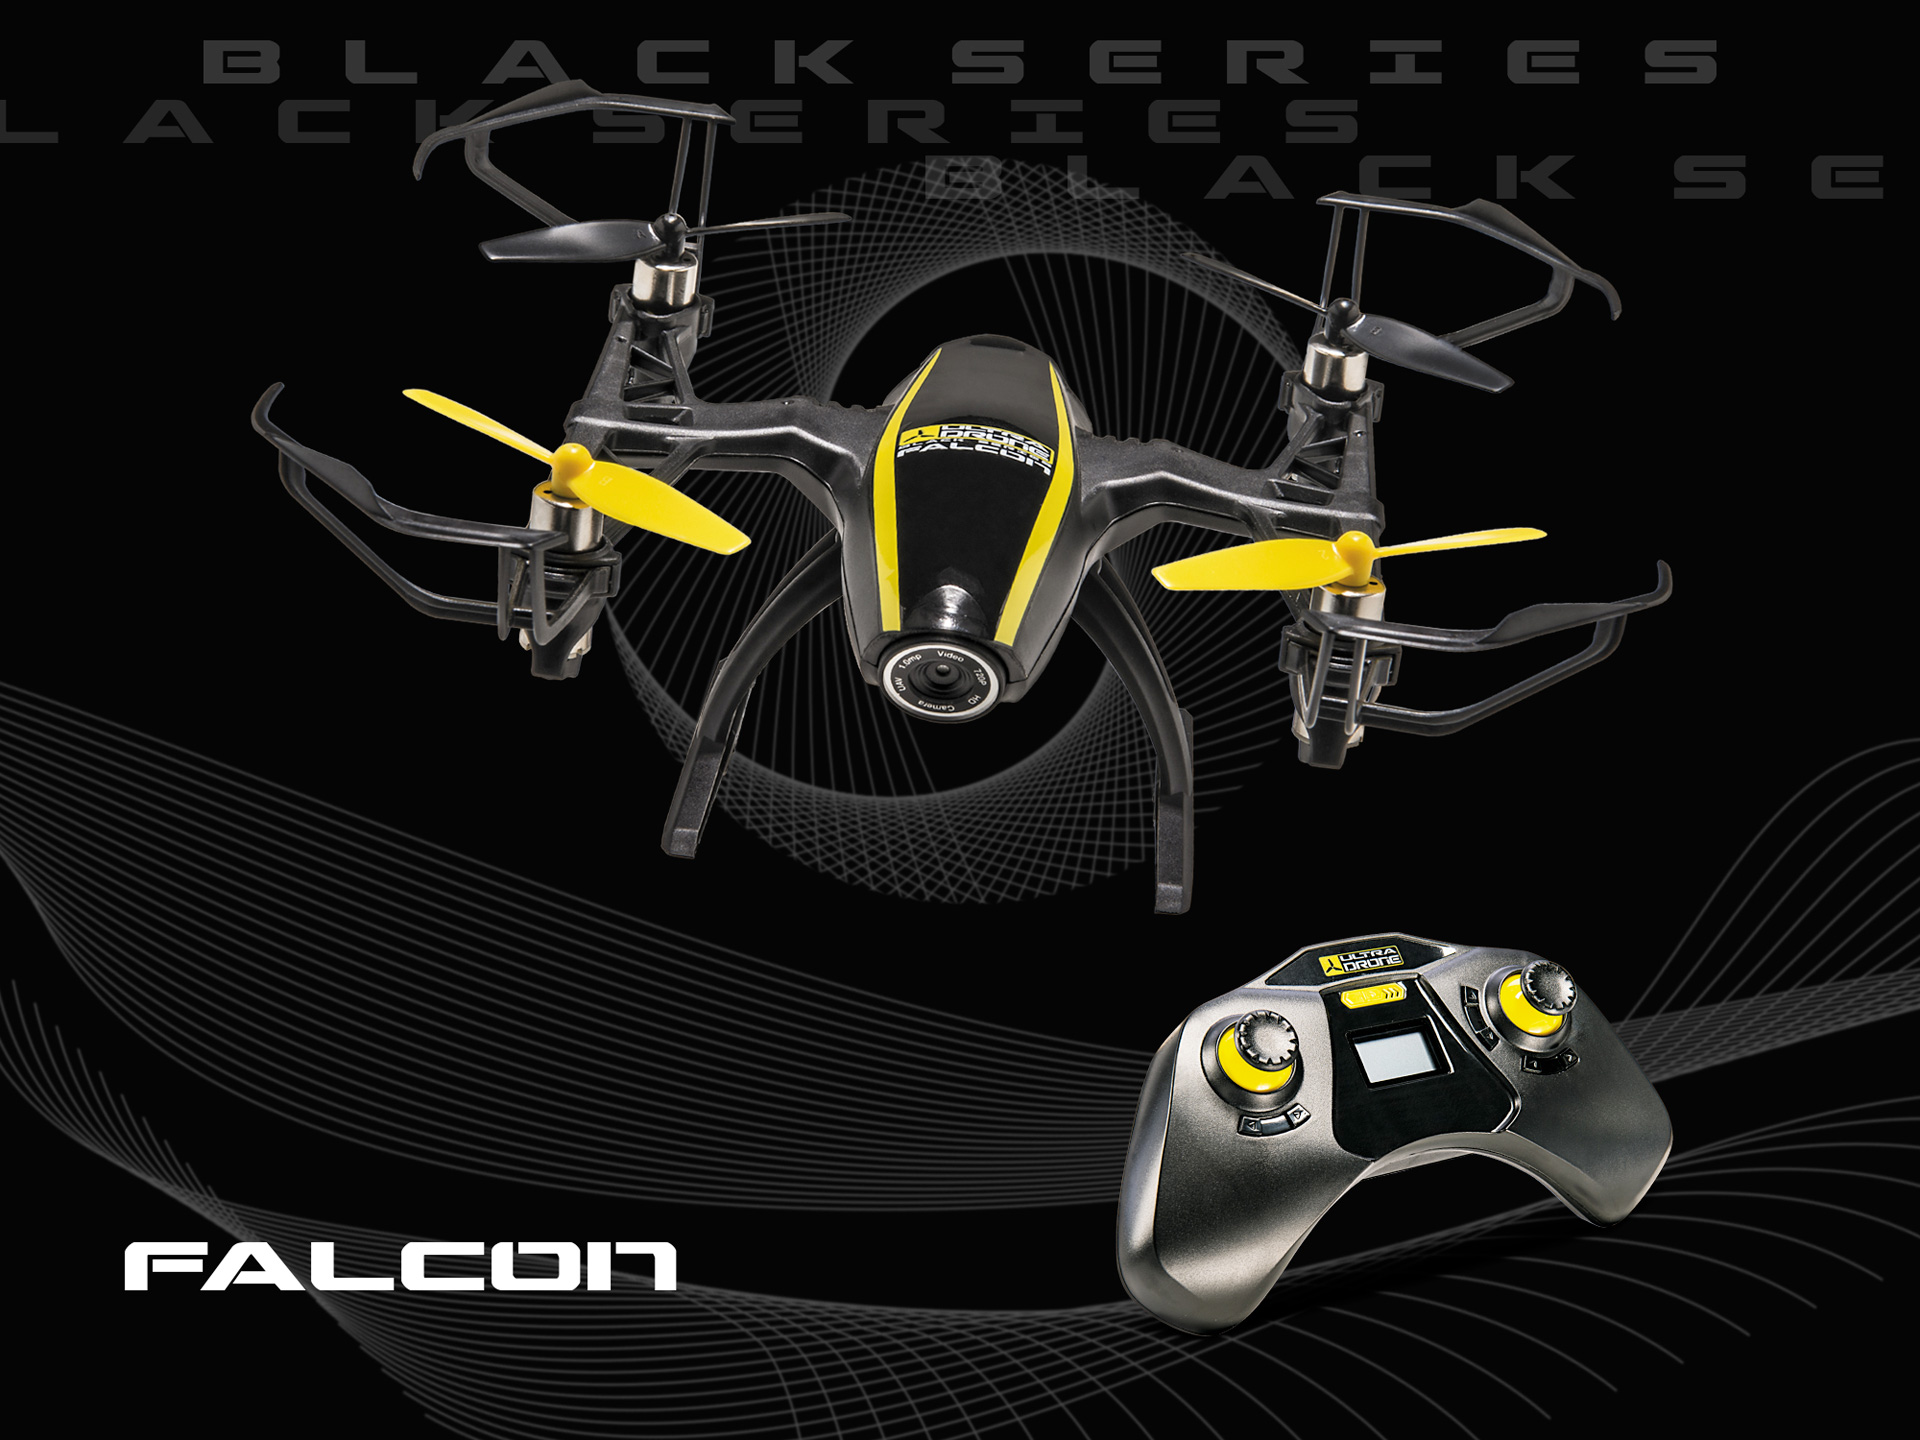 Mondo Motors Ultradrone Falcon